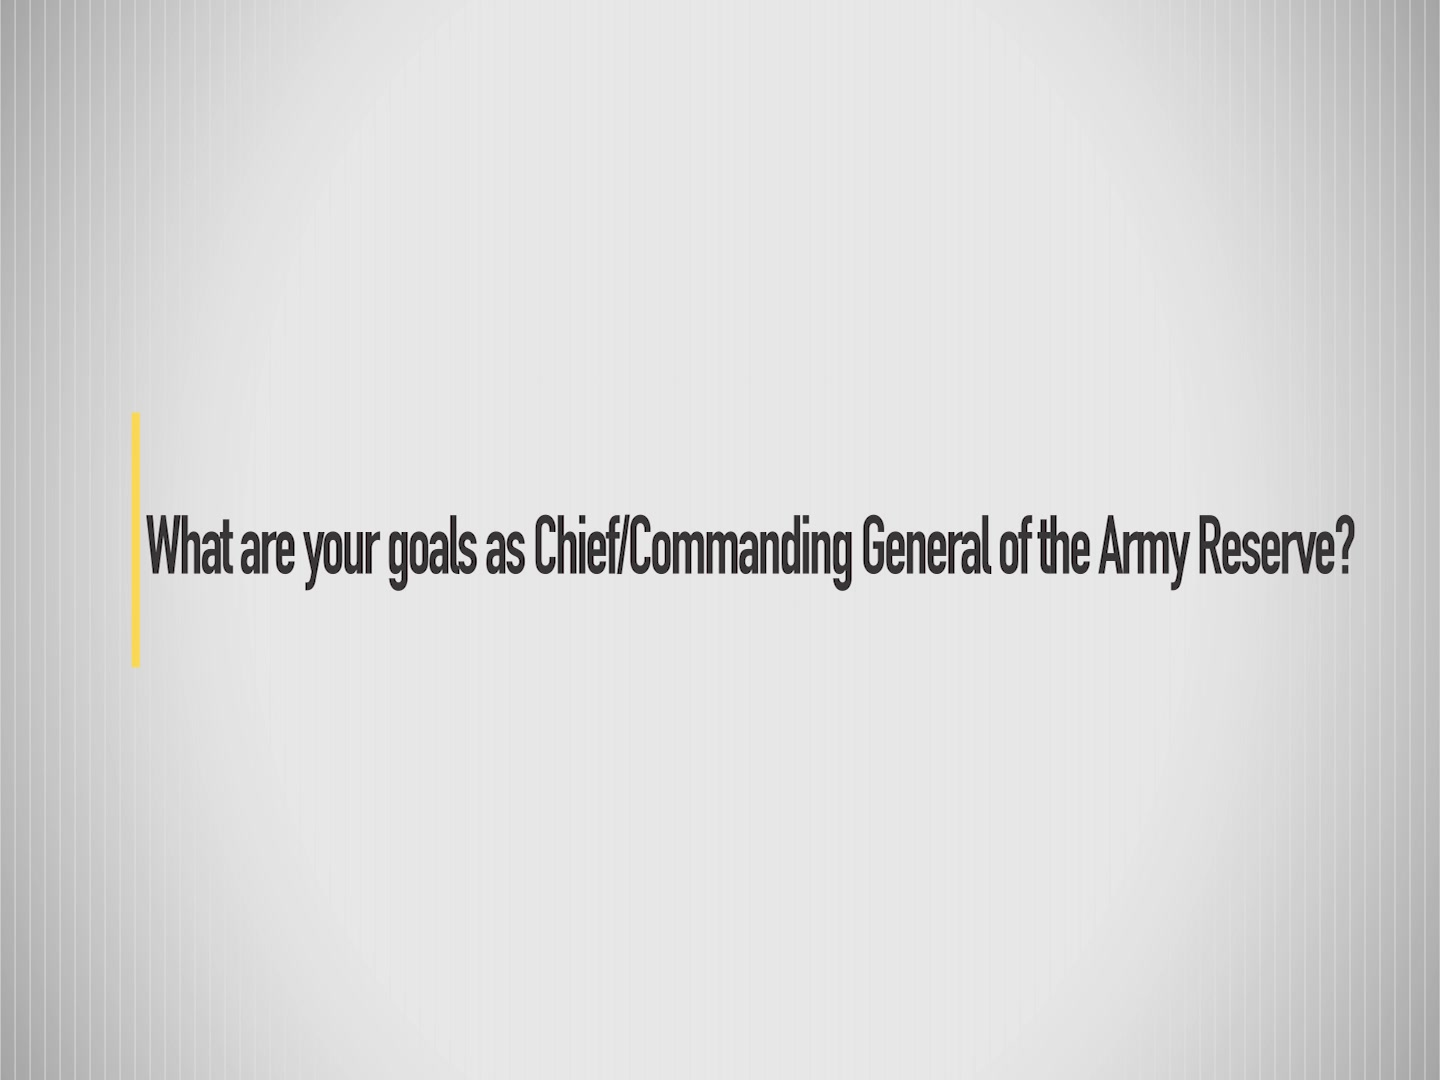 What are your goals as Commanding General and Chief of the Army Reserve?